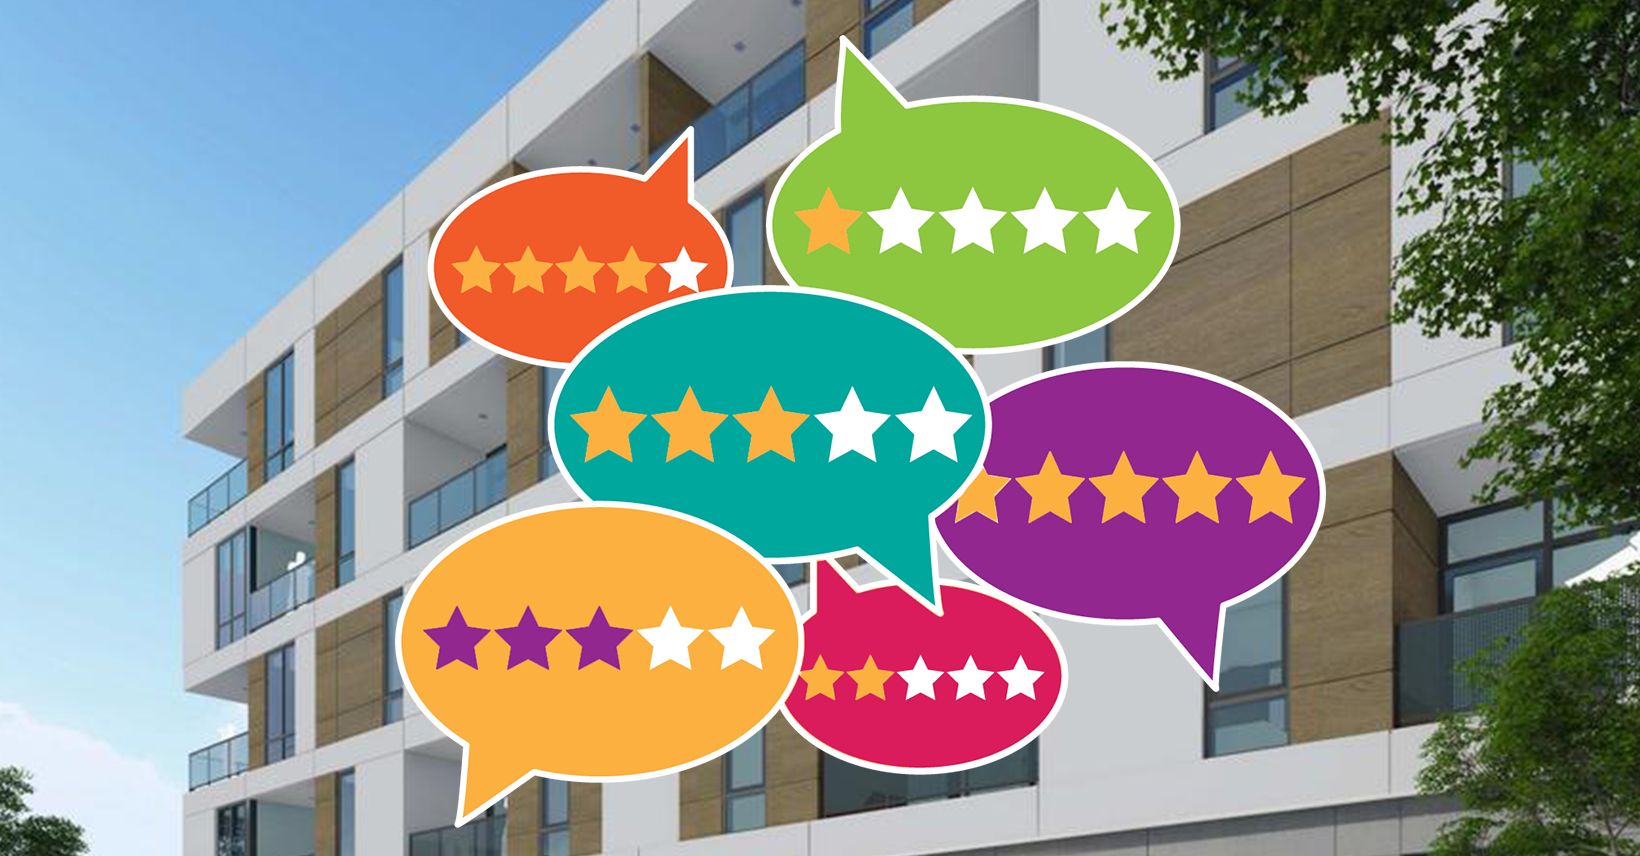 Online Reviews for your building